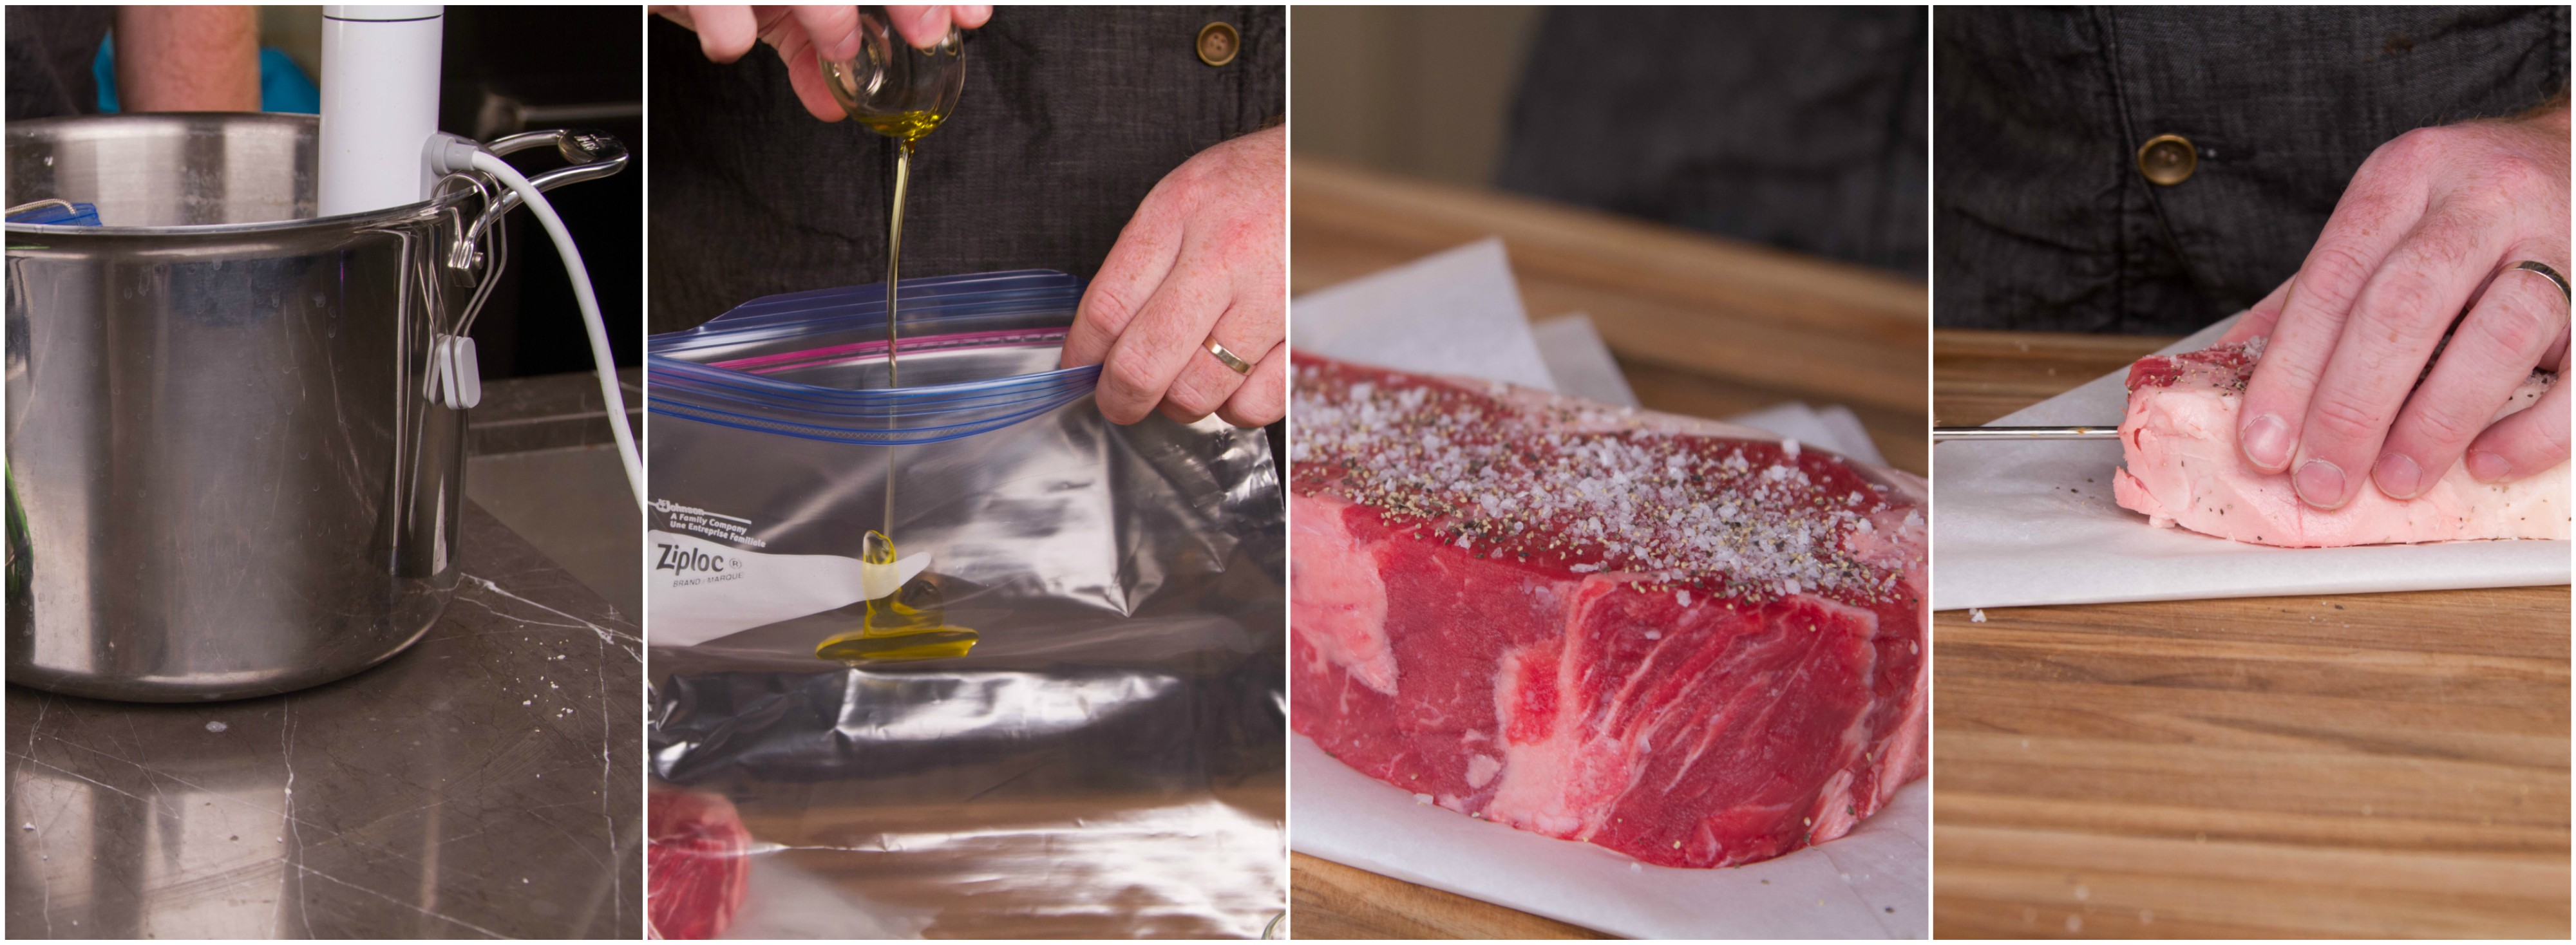 how to cook a steak sous vides